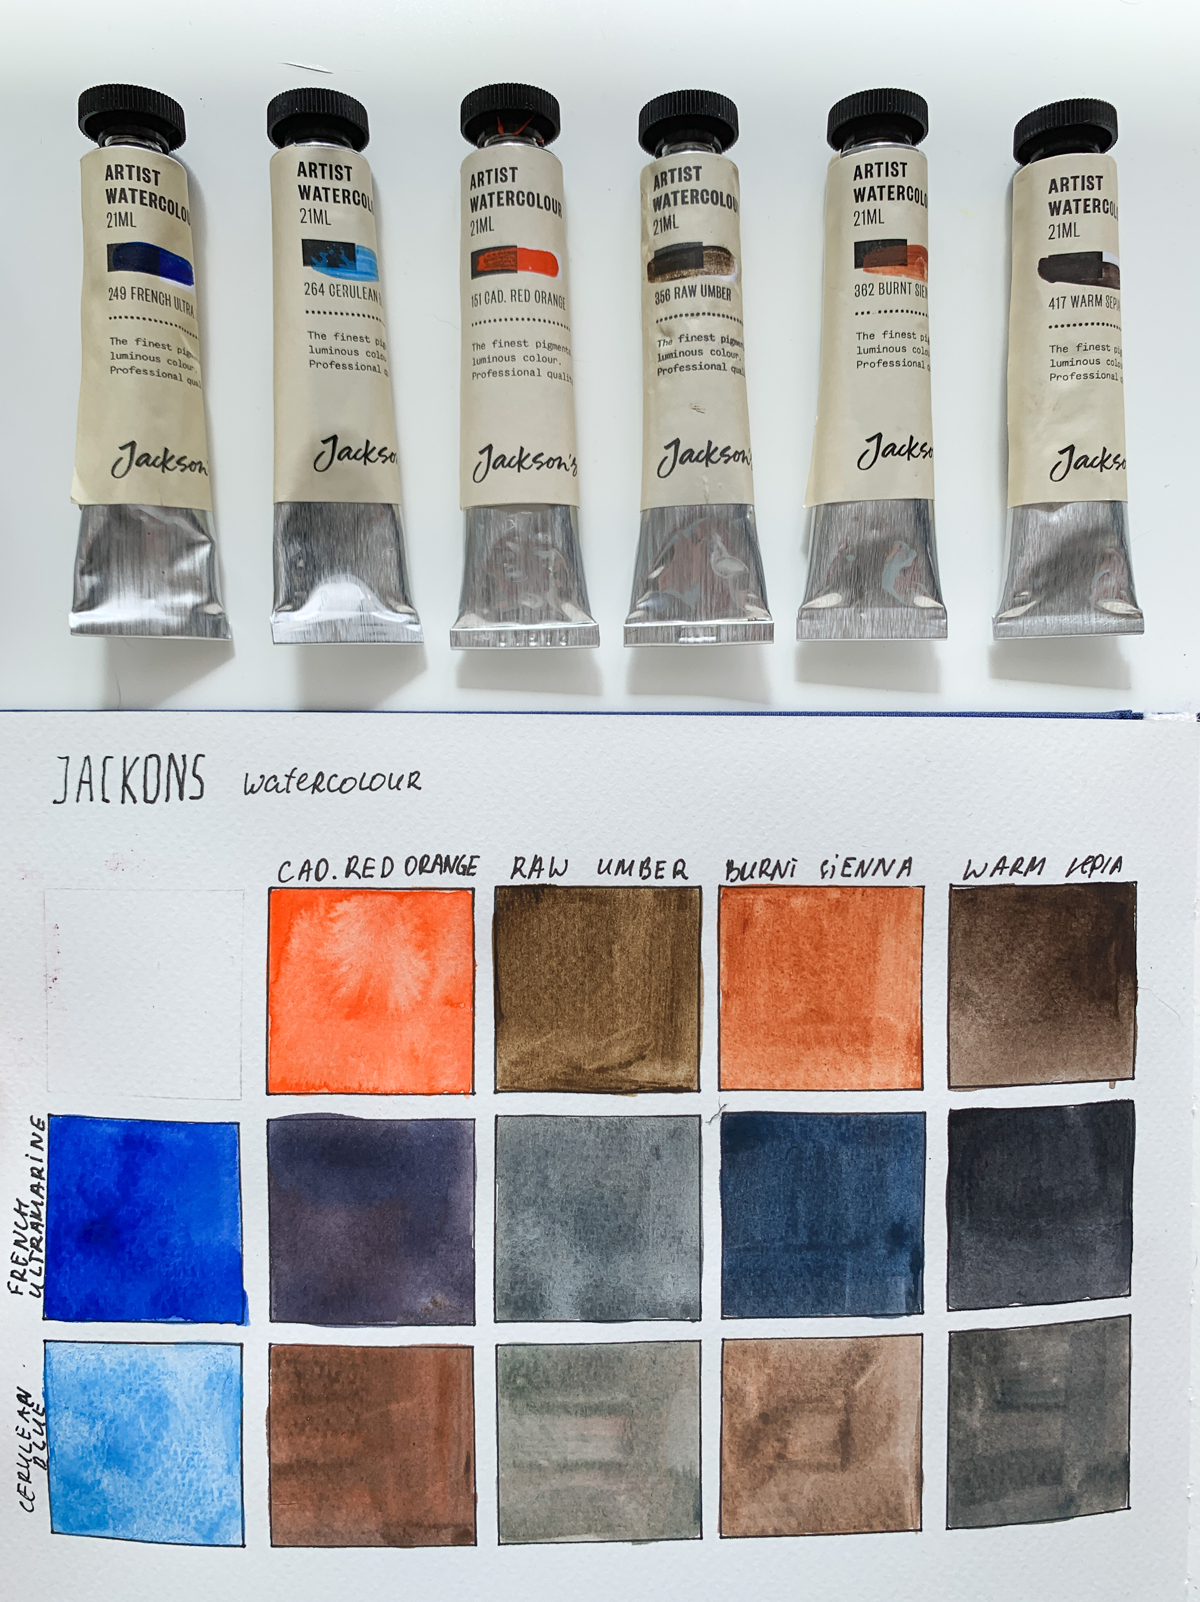 Jackson's Watercolour tubes and painted out mixing grid